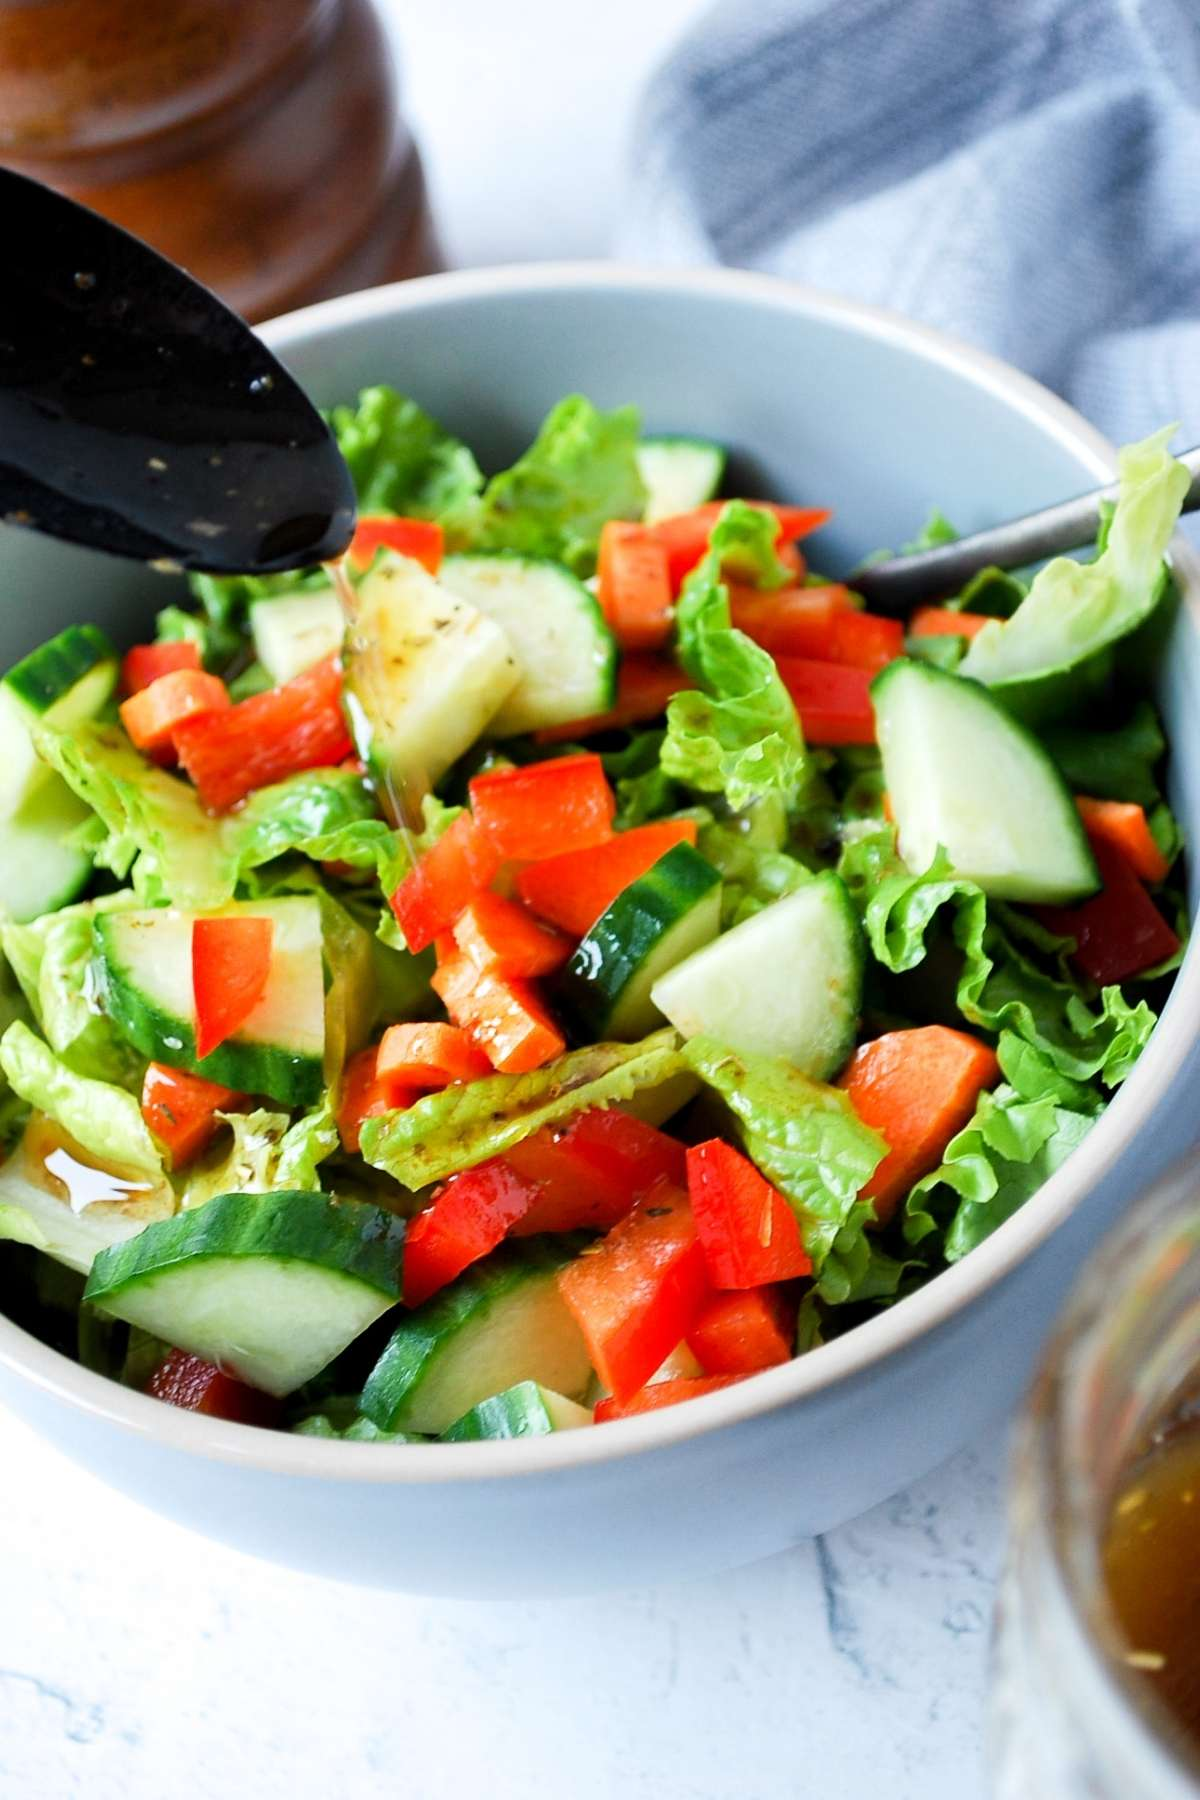 a spoon drizzling dressing on a garden salad